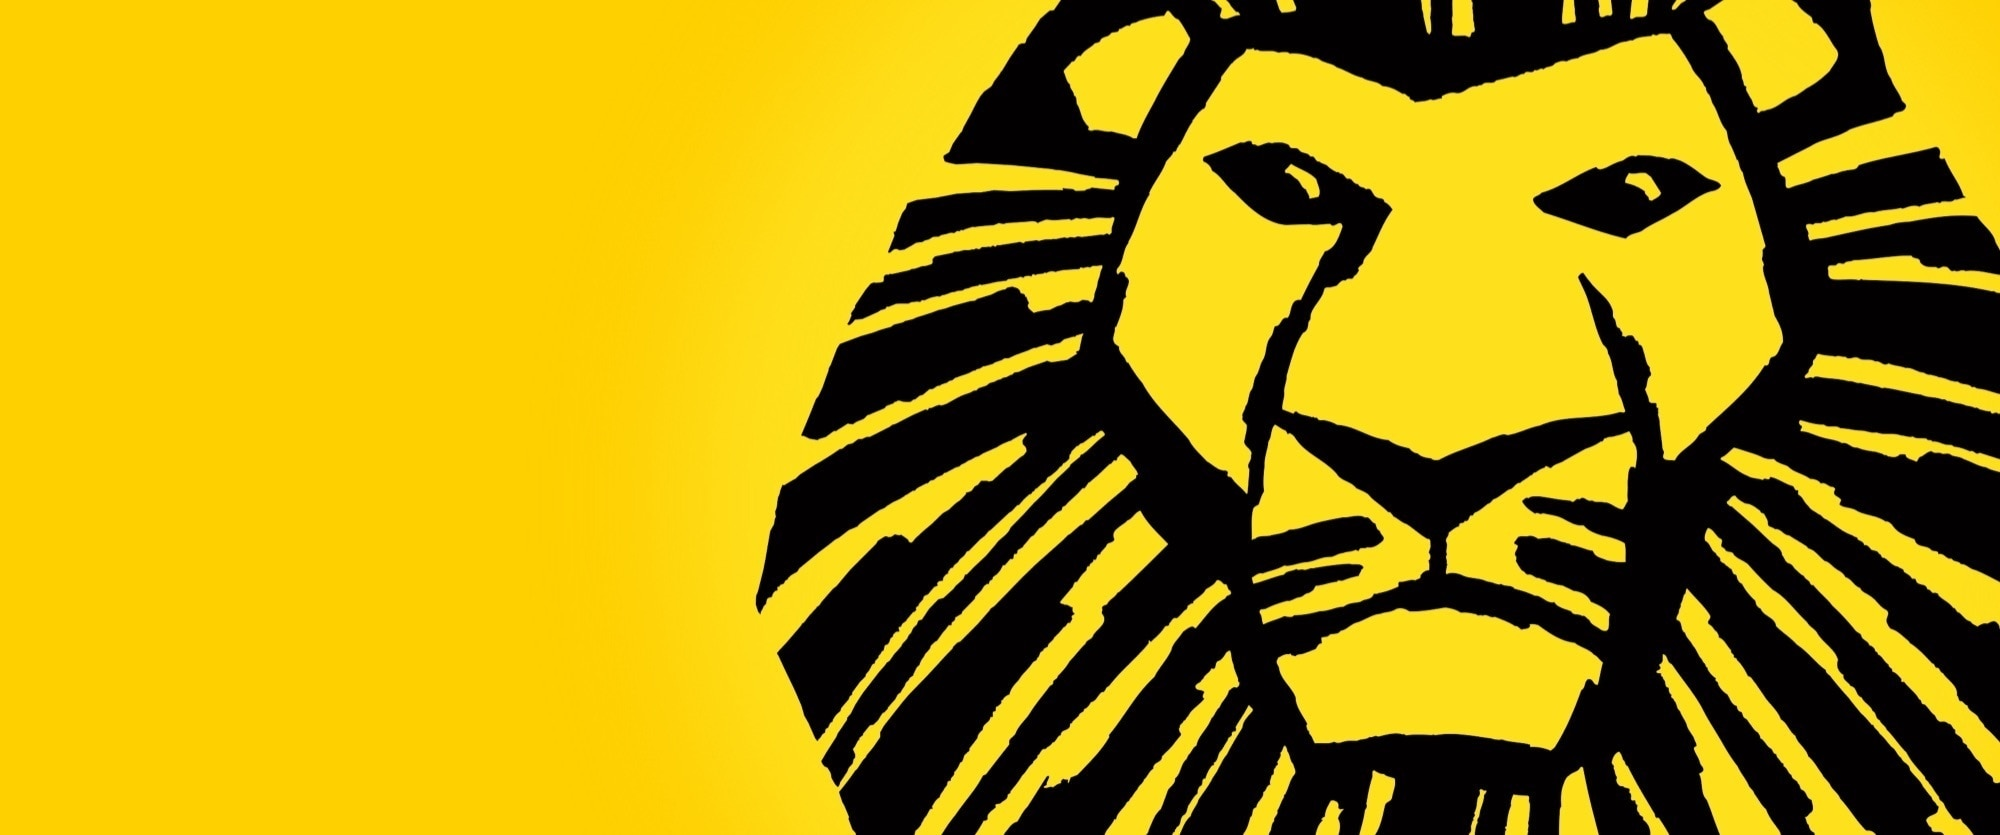 Book tickets with Disney Tickets for The Lion King Tour